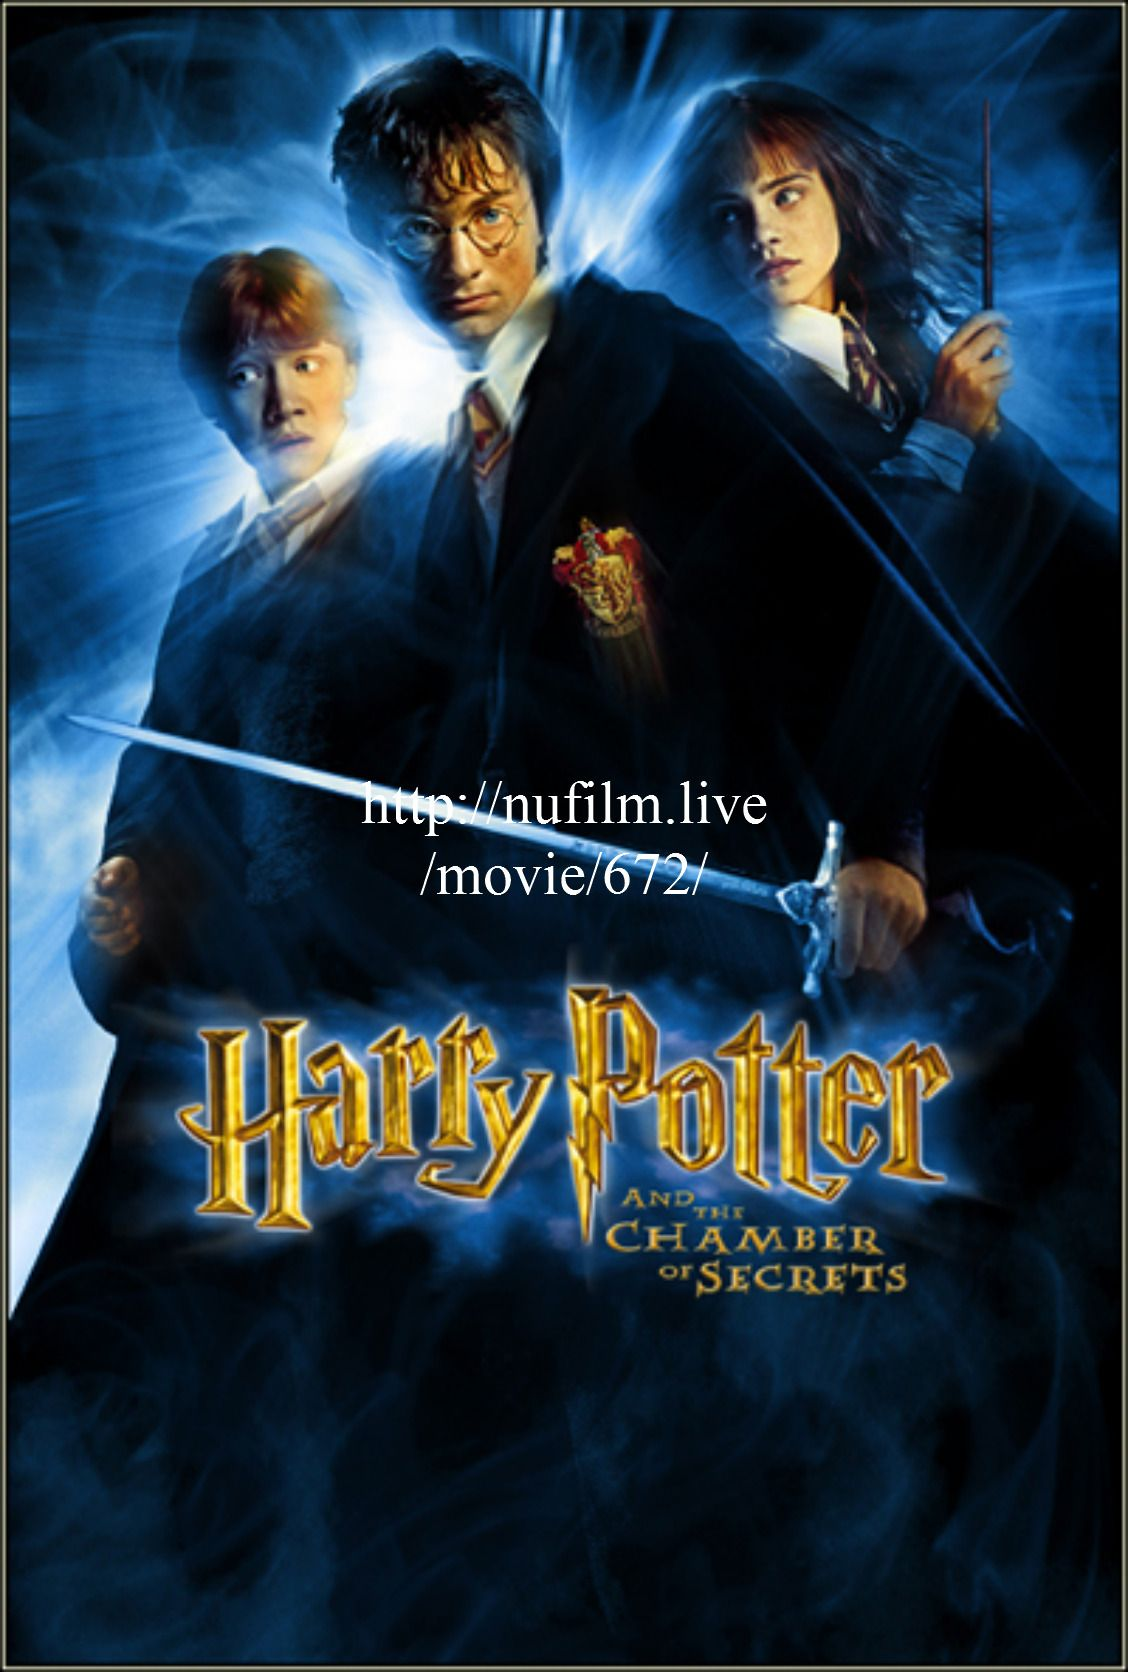 Climax 2018 Film Complet Streaming Vf Qiuy Harry Potter Pictures Harry Potter Film Harry Potter